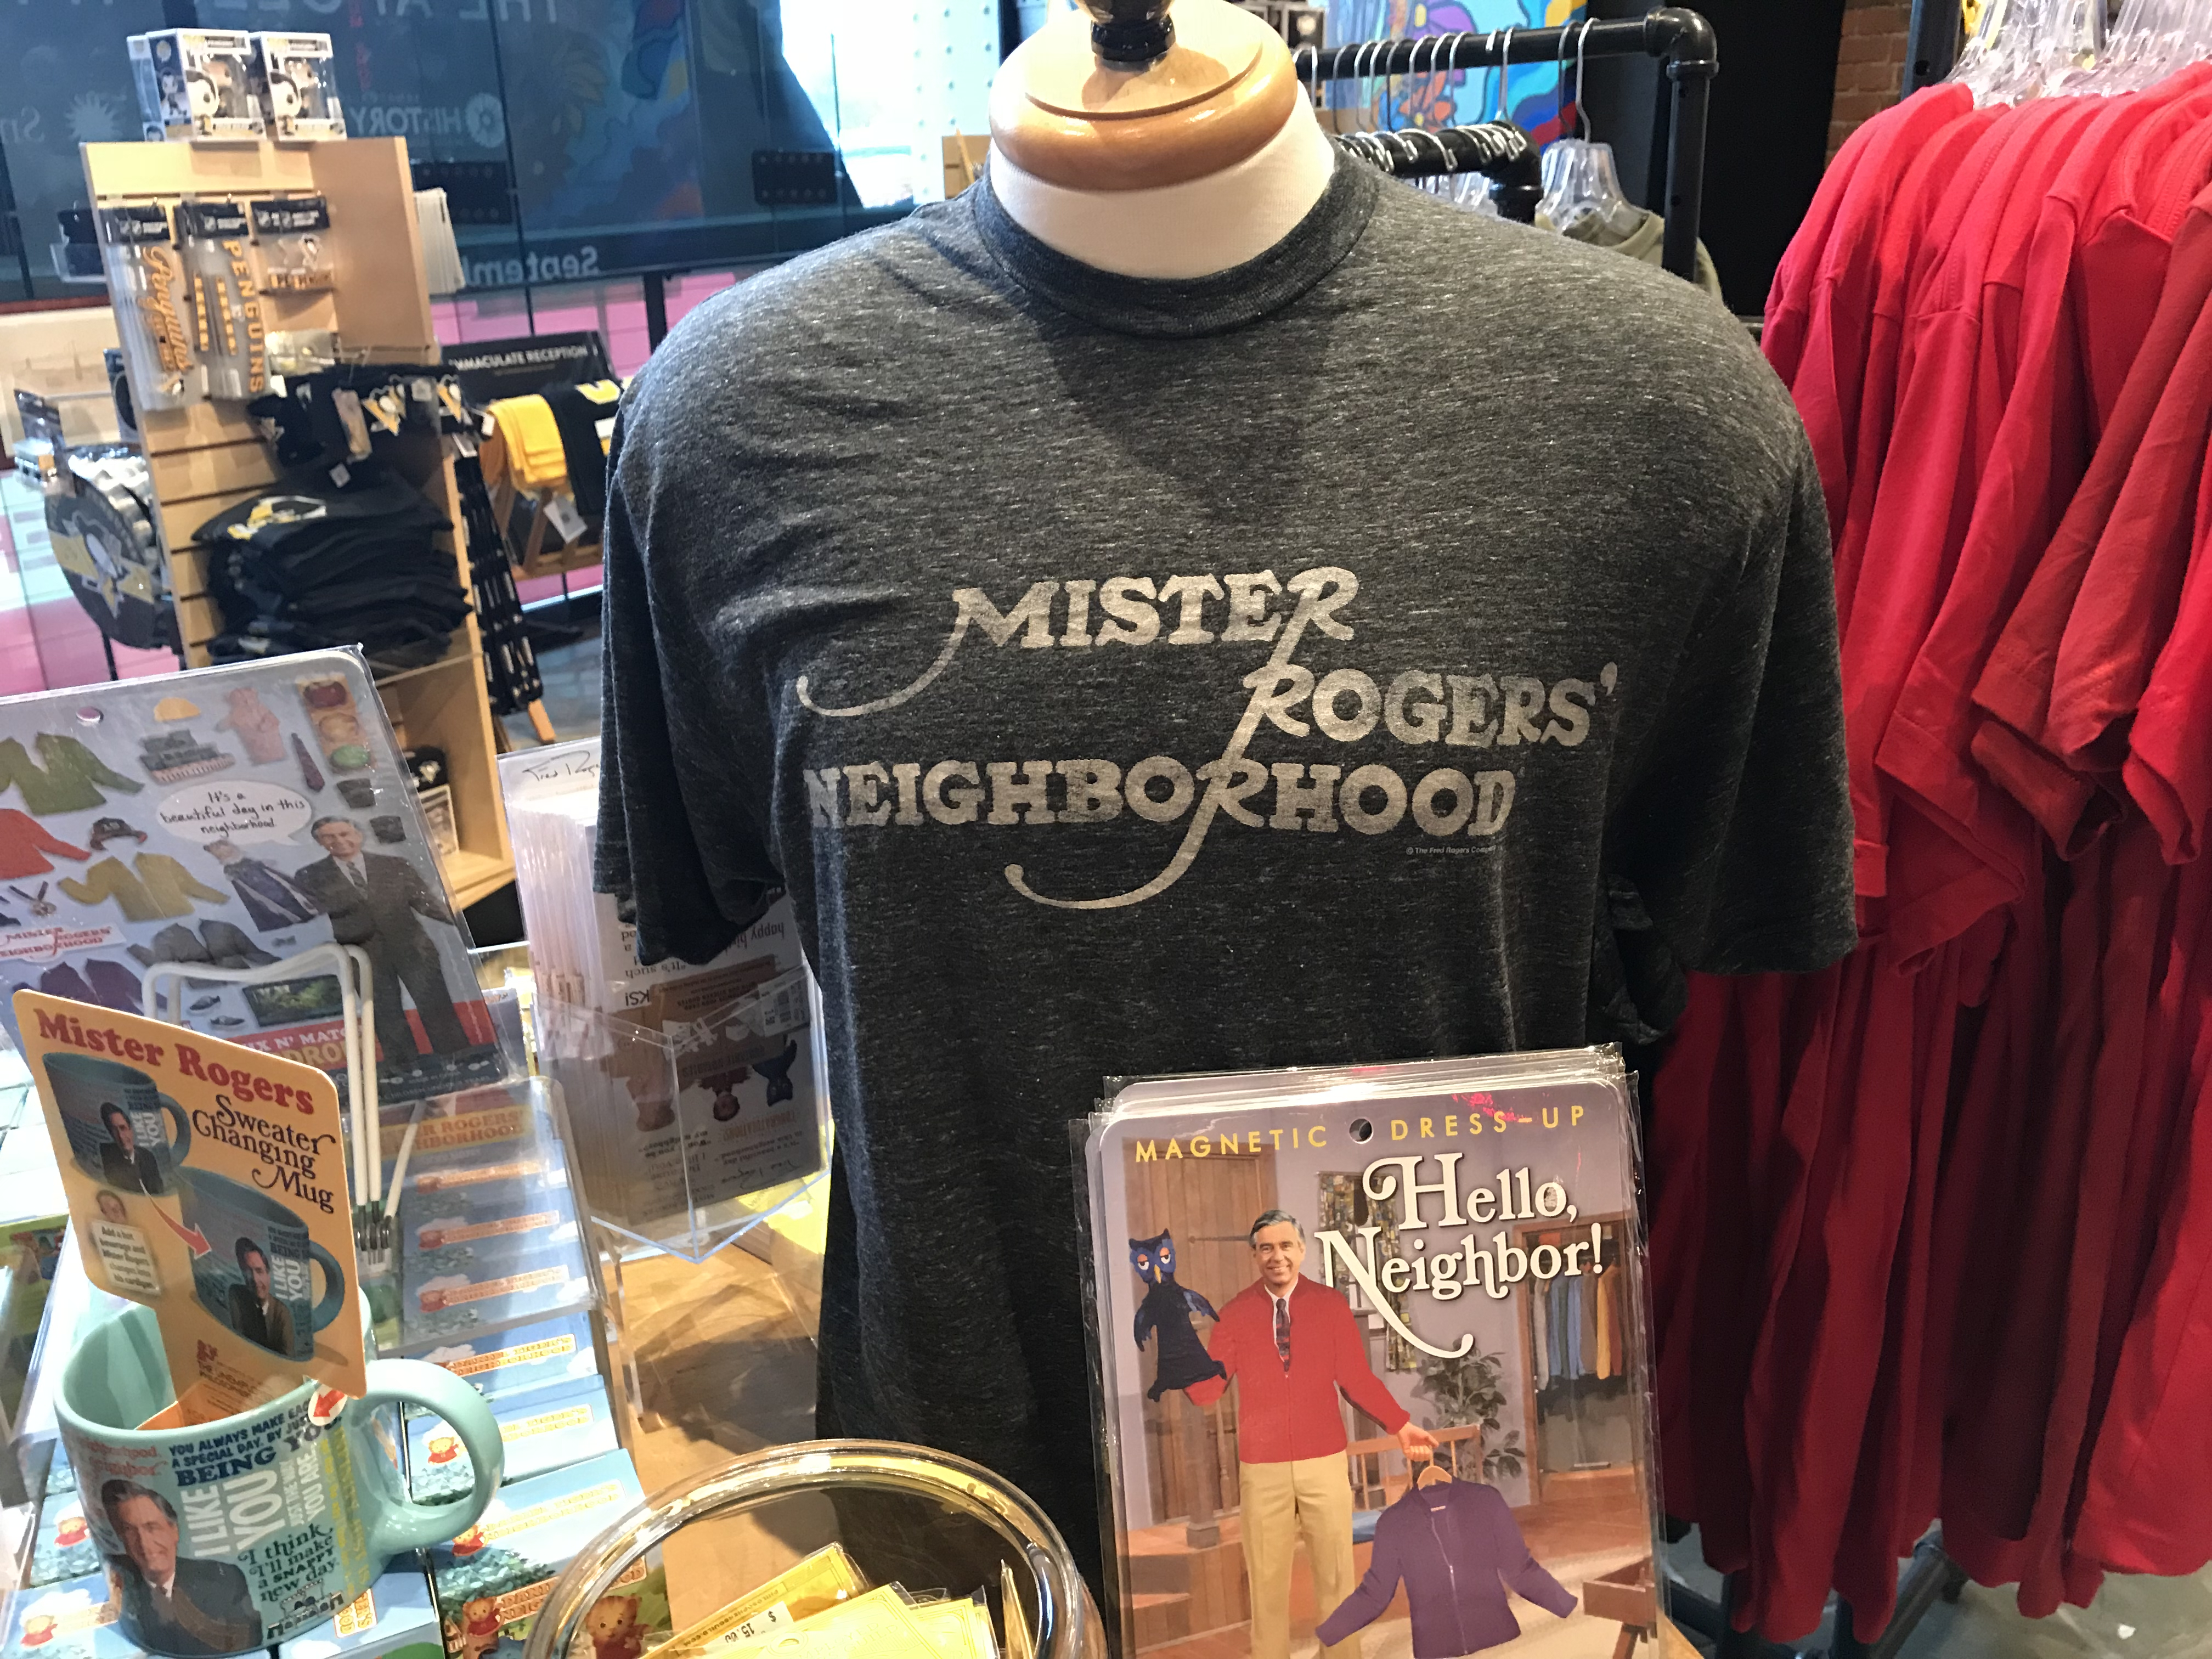 Mister Rogers' Neighborhood Vintage T-Shirt | History Center Museum Shop